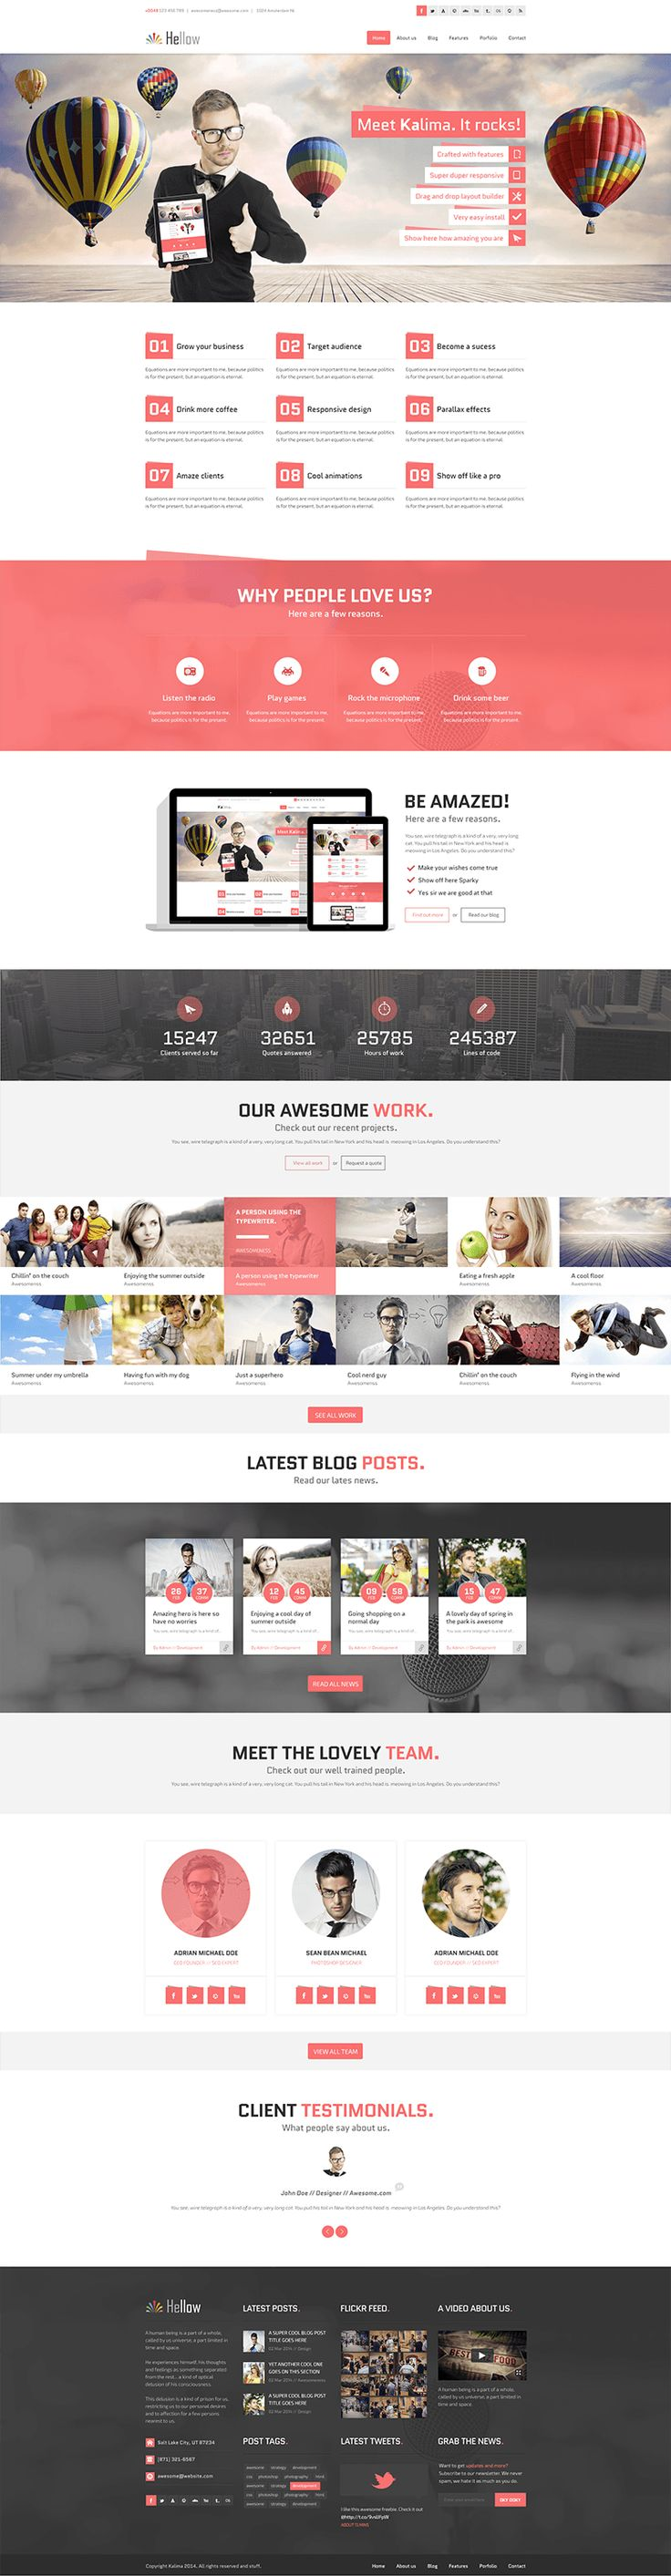 17+ best images about Free psd template webdesign / Website on ...